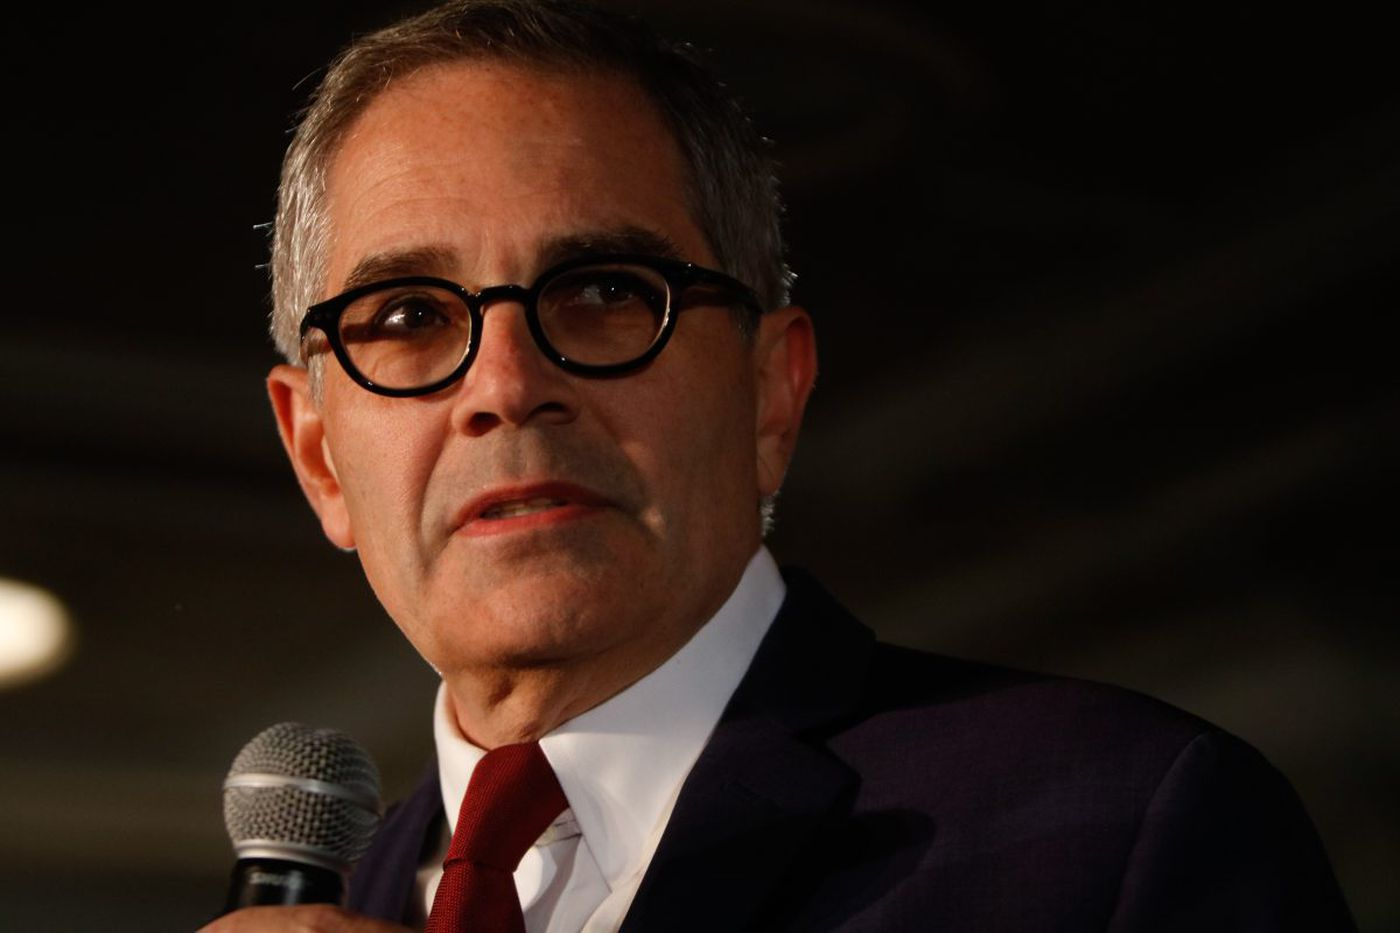 Krasner firings stir fallout in court: Cases stalled, criticism emerges